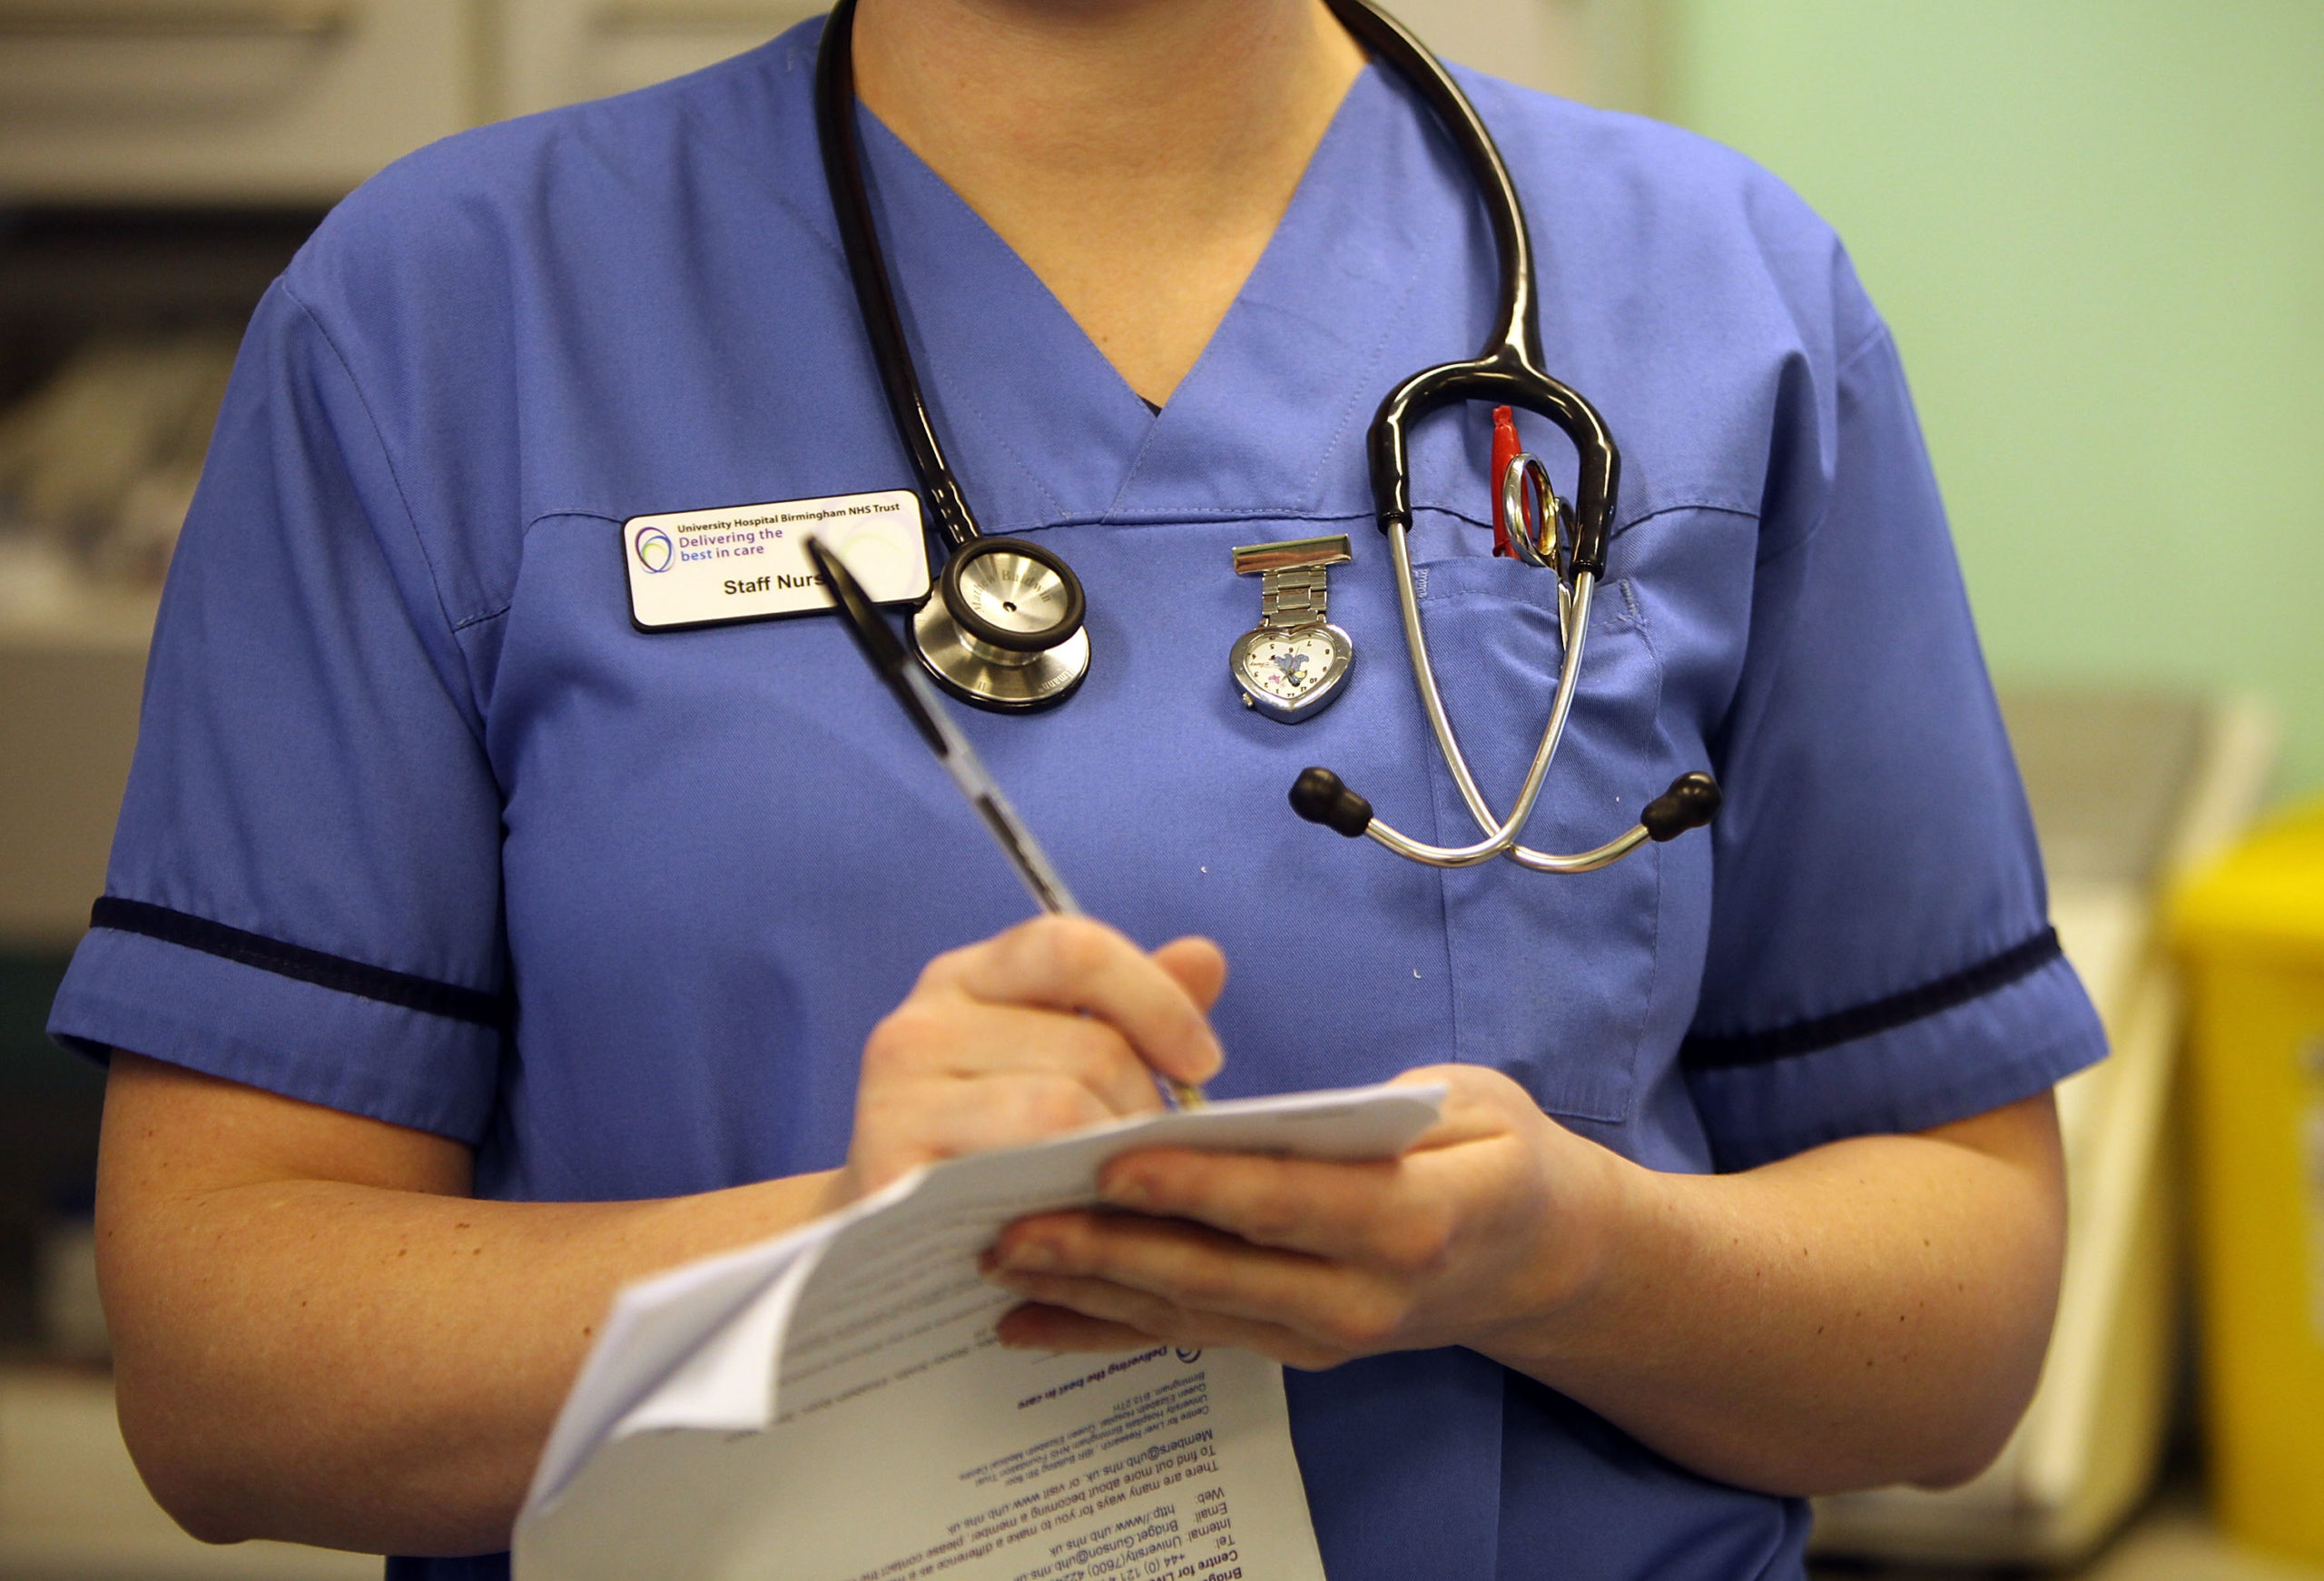 NHS England officials were embroiled in controversy after a document appeared to compare being LGBT+ to being disabled. (Christopher Furlong/Getty Images)